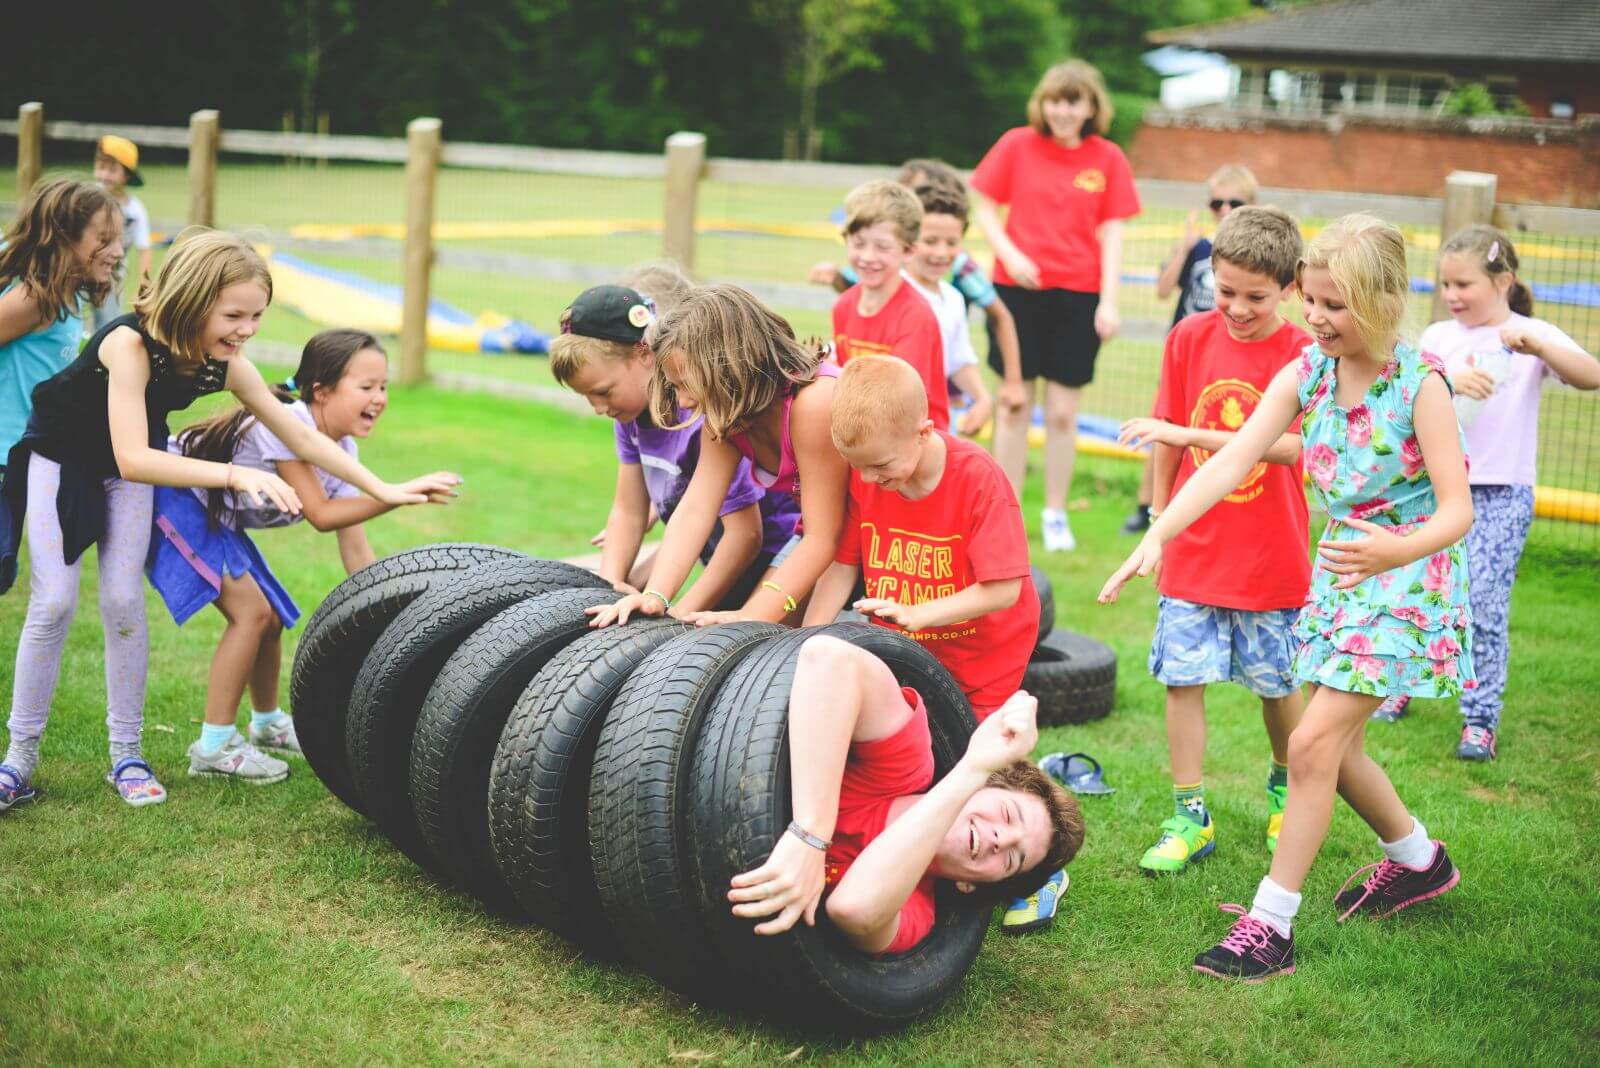 13 Best Summer Camp Activities To Add Fun In Your Vacation